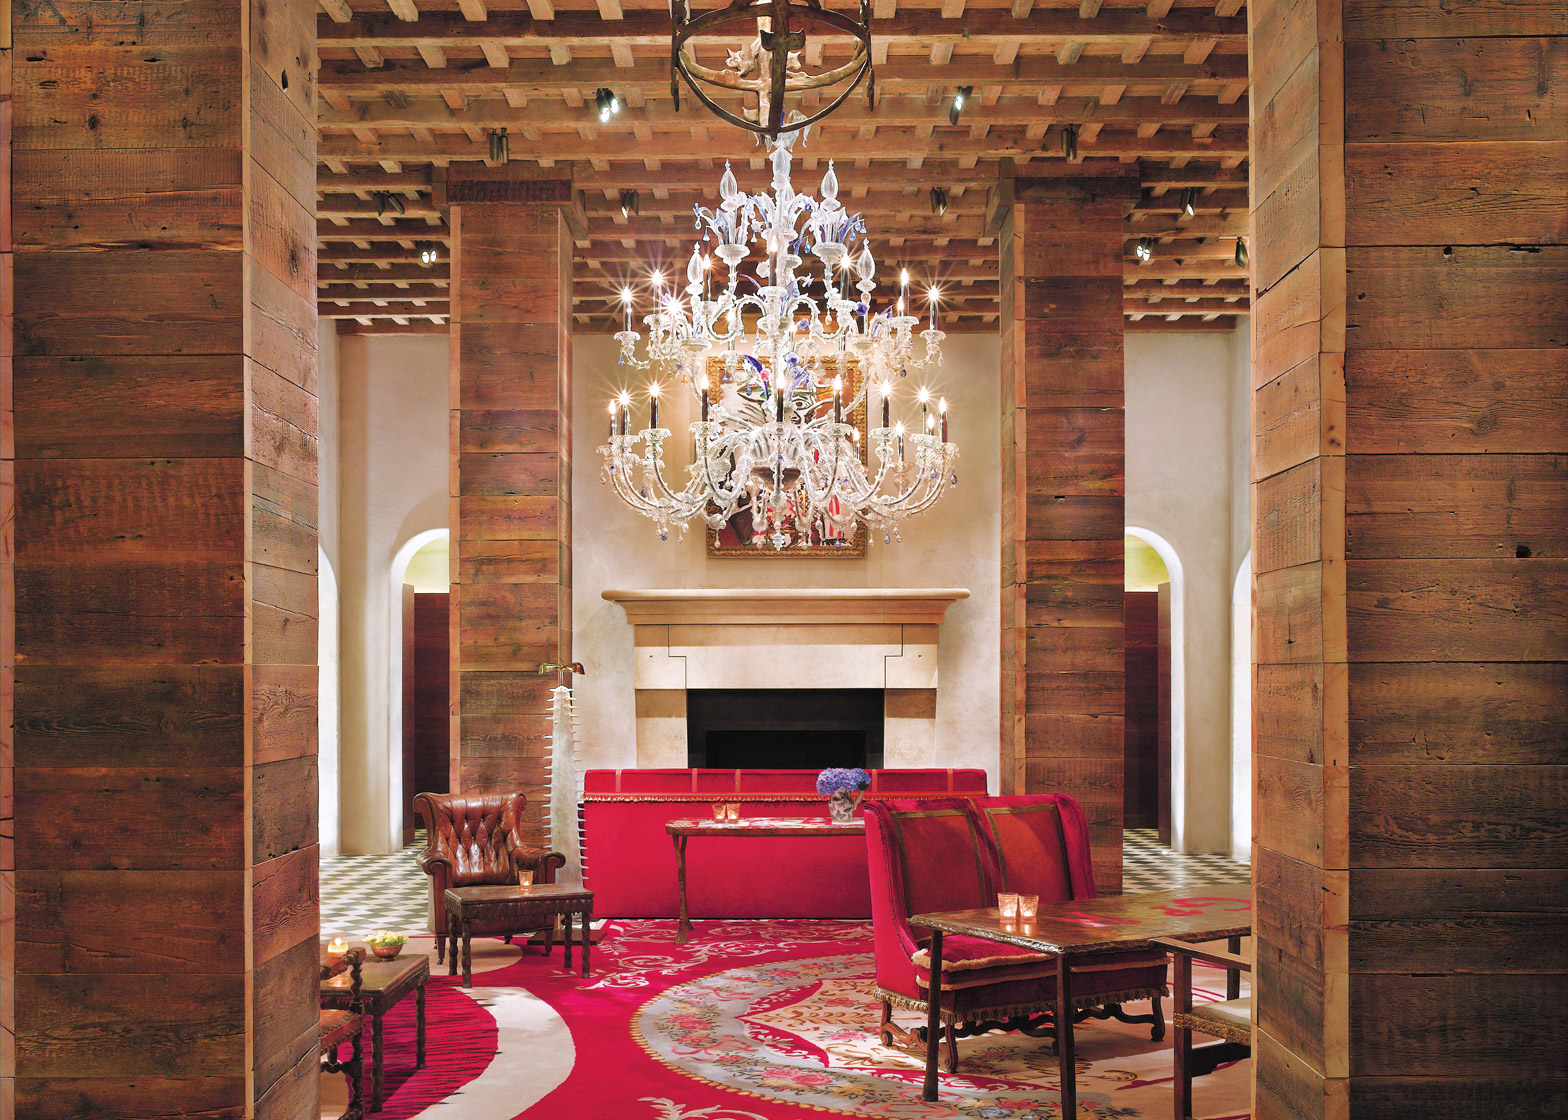 Schrager's Gramercy Park Hotel was designed by Julian Schnabel with interiors influenced by bohemian culture. It opened in New York in 2006.